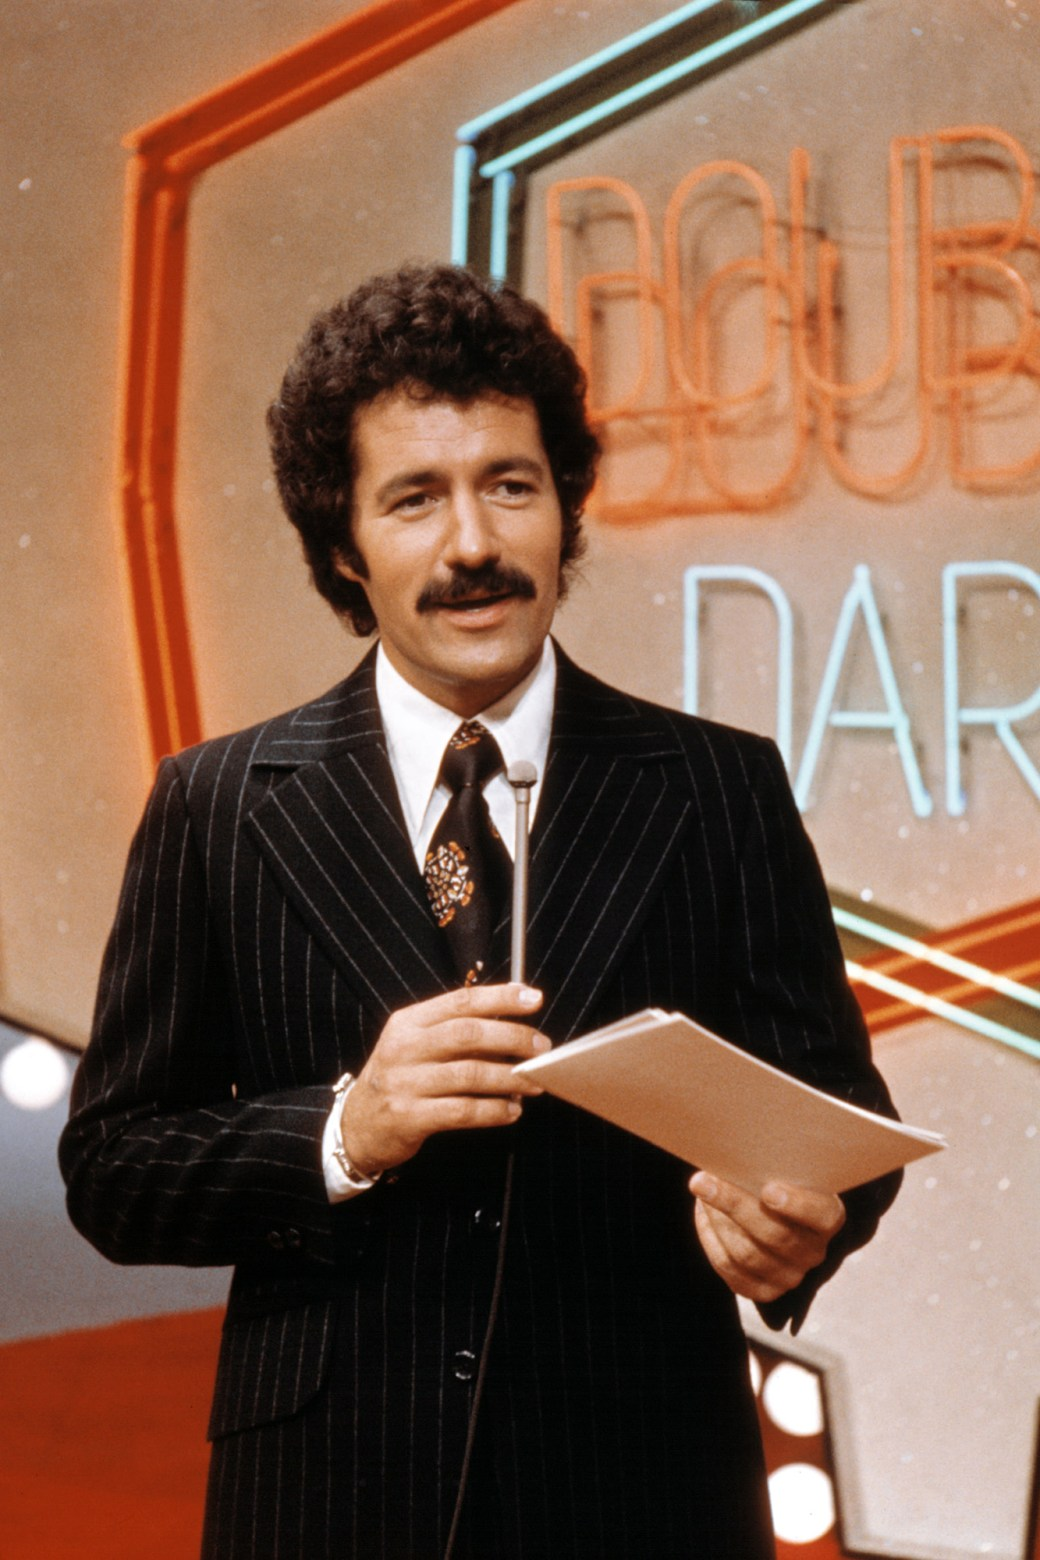 DOUBLE DARE, Alex Trebek, 1976-77